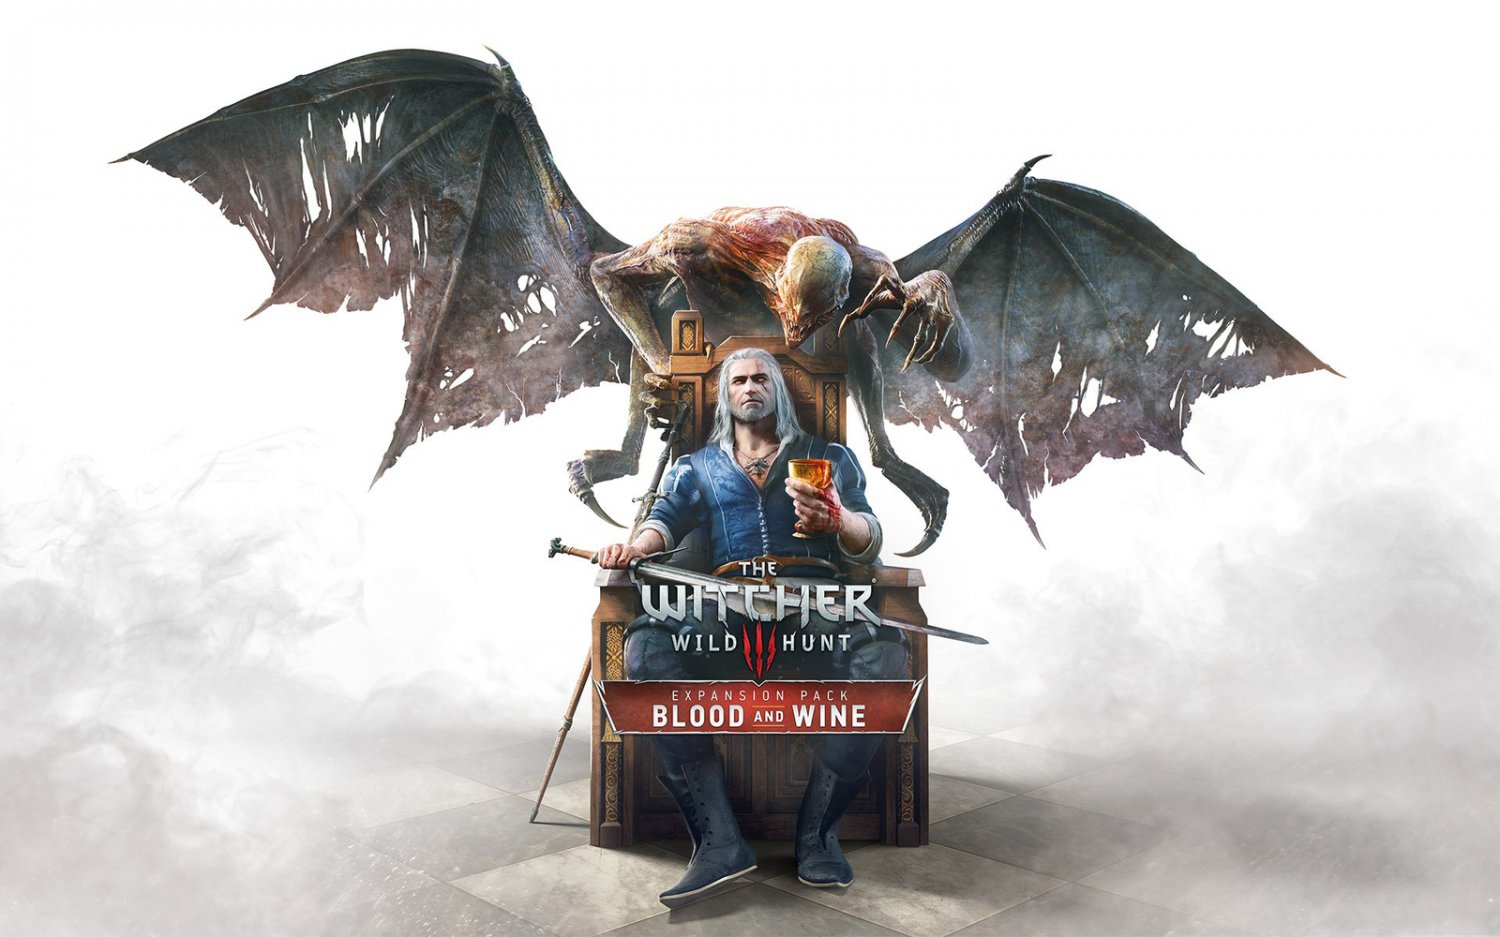 """The Witcher 3 Wild Hunt Blood and Wine Game 13""""x19"""" (32cm/49cm) Poster"""